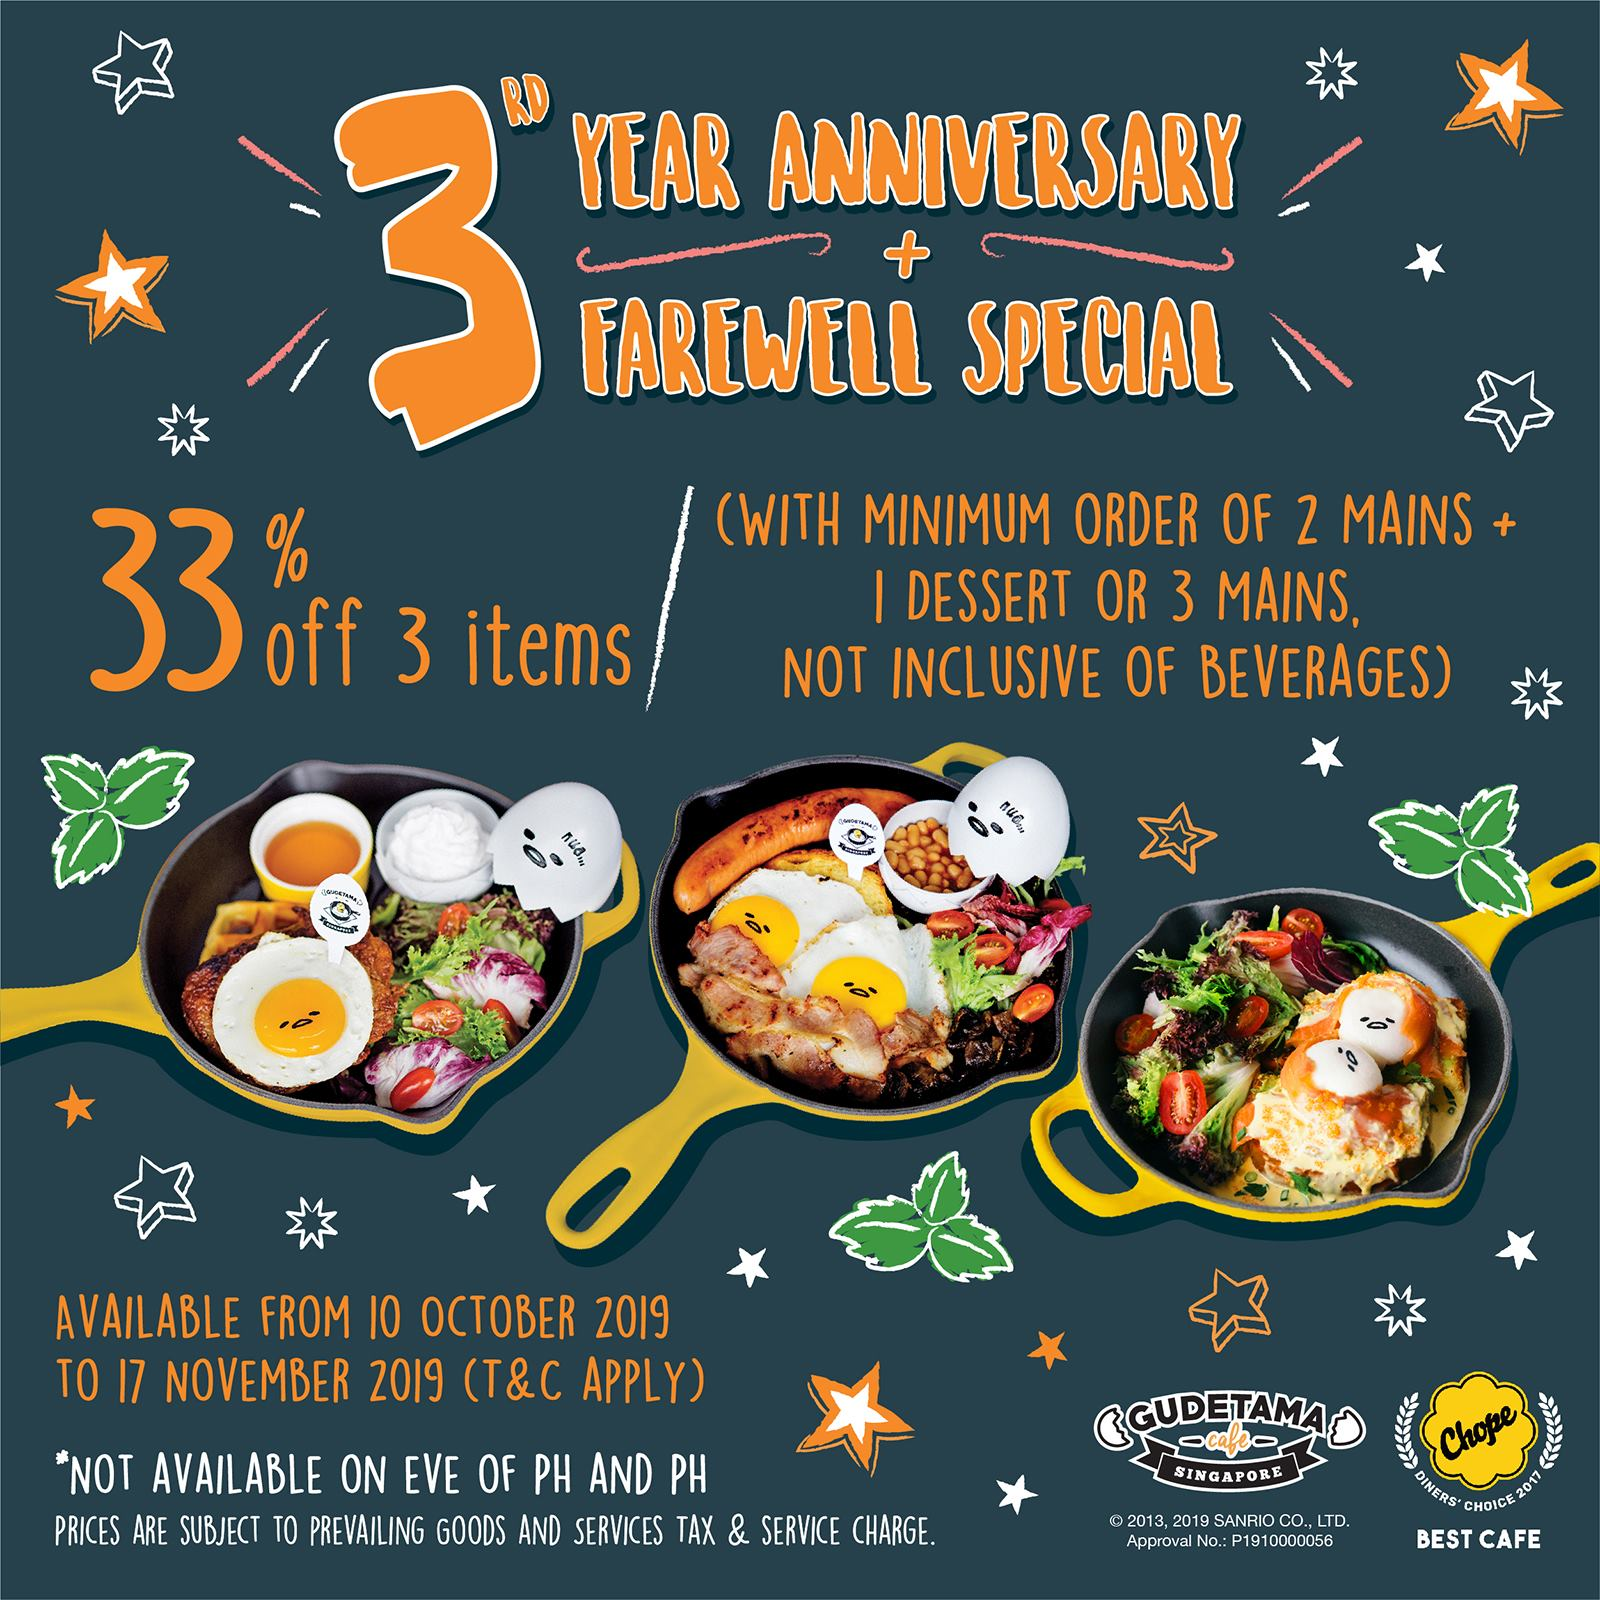 Gudetama Café Singapore 3rd Anniversary & Farewell Special 33% Off Promotion 10 Oct - 17 Nov 2019 | Why Not Deals & Promotions